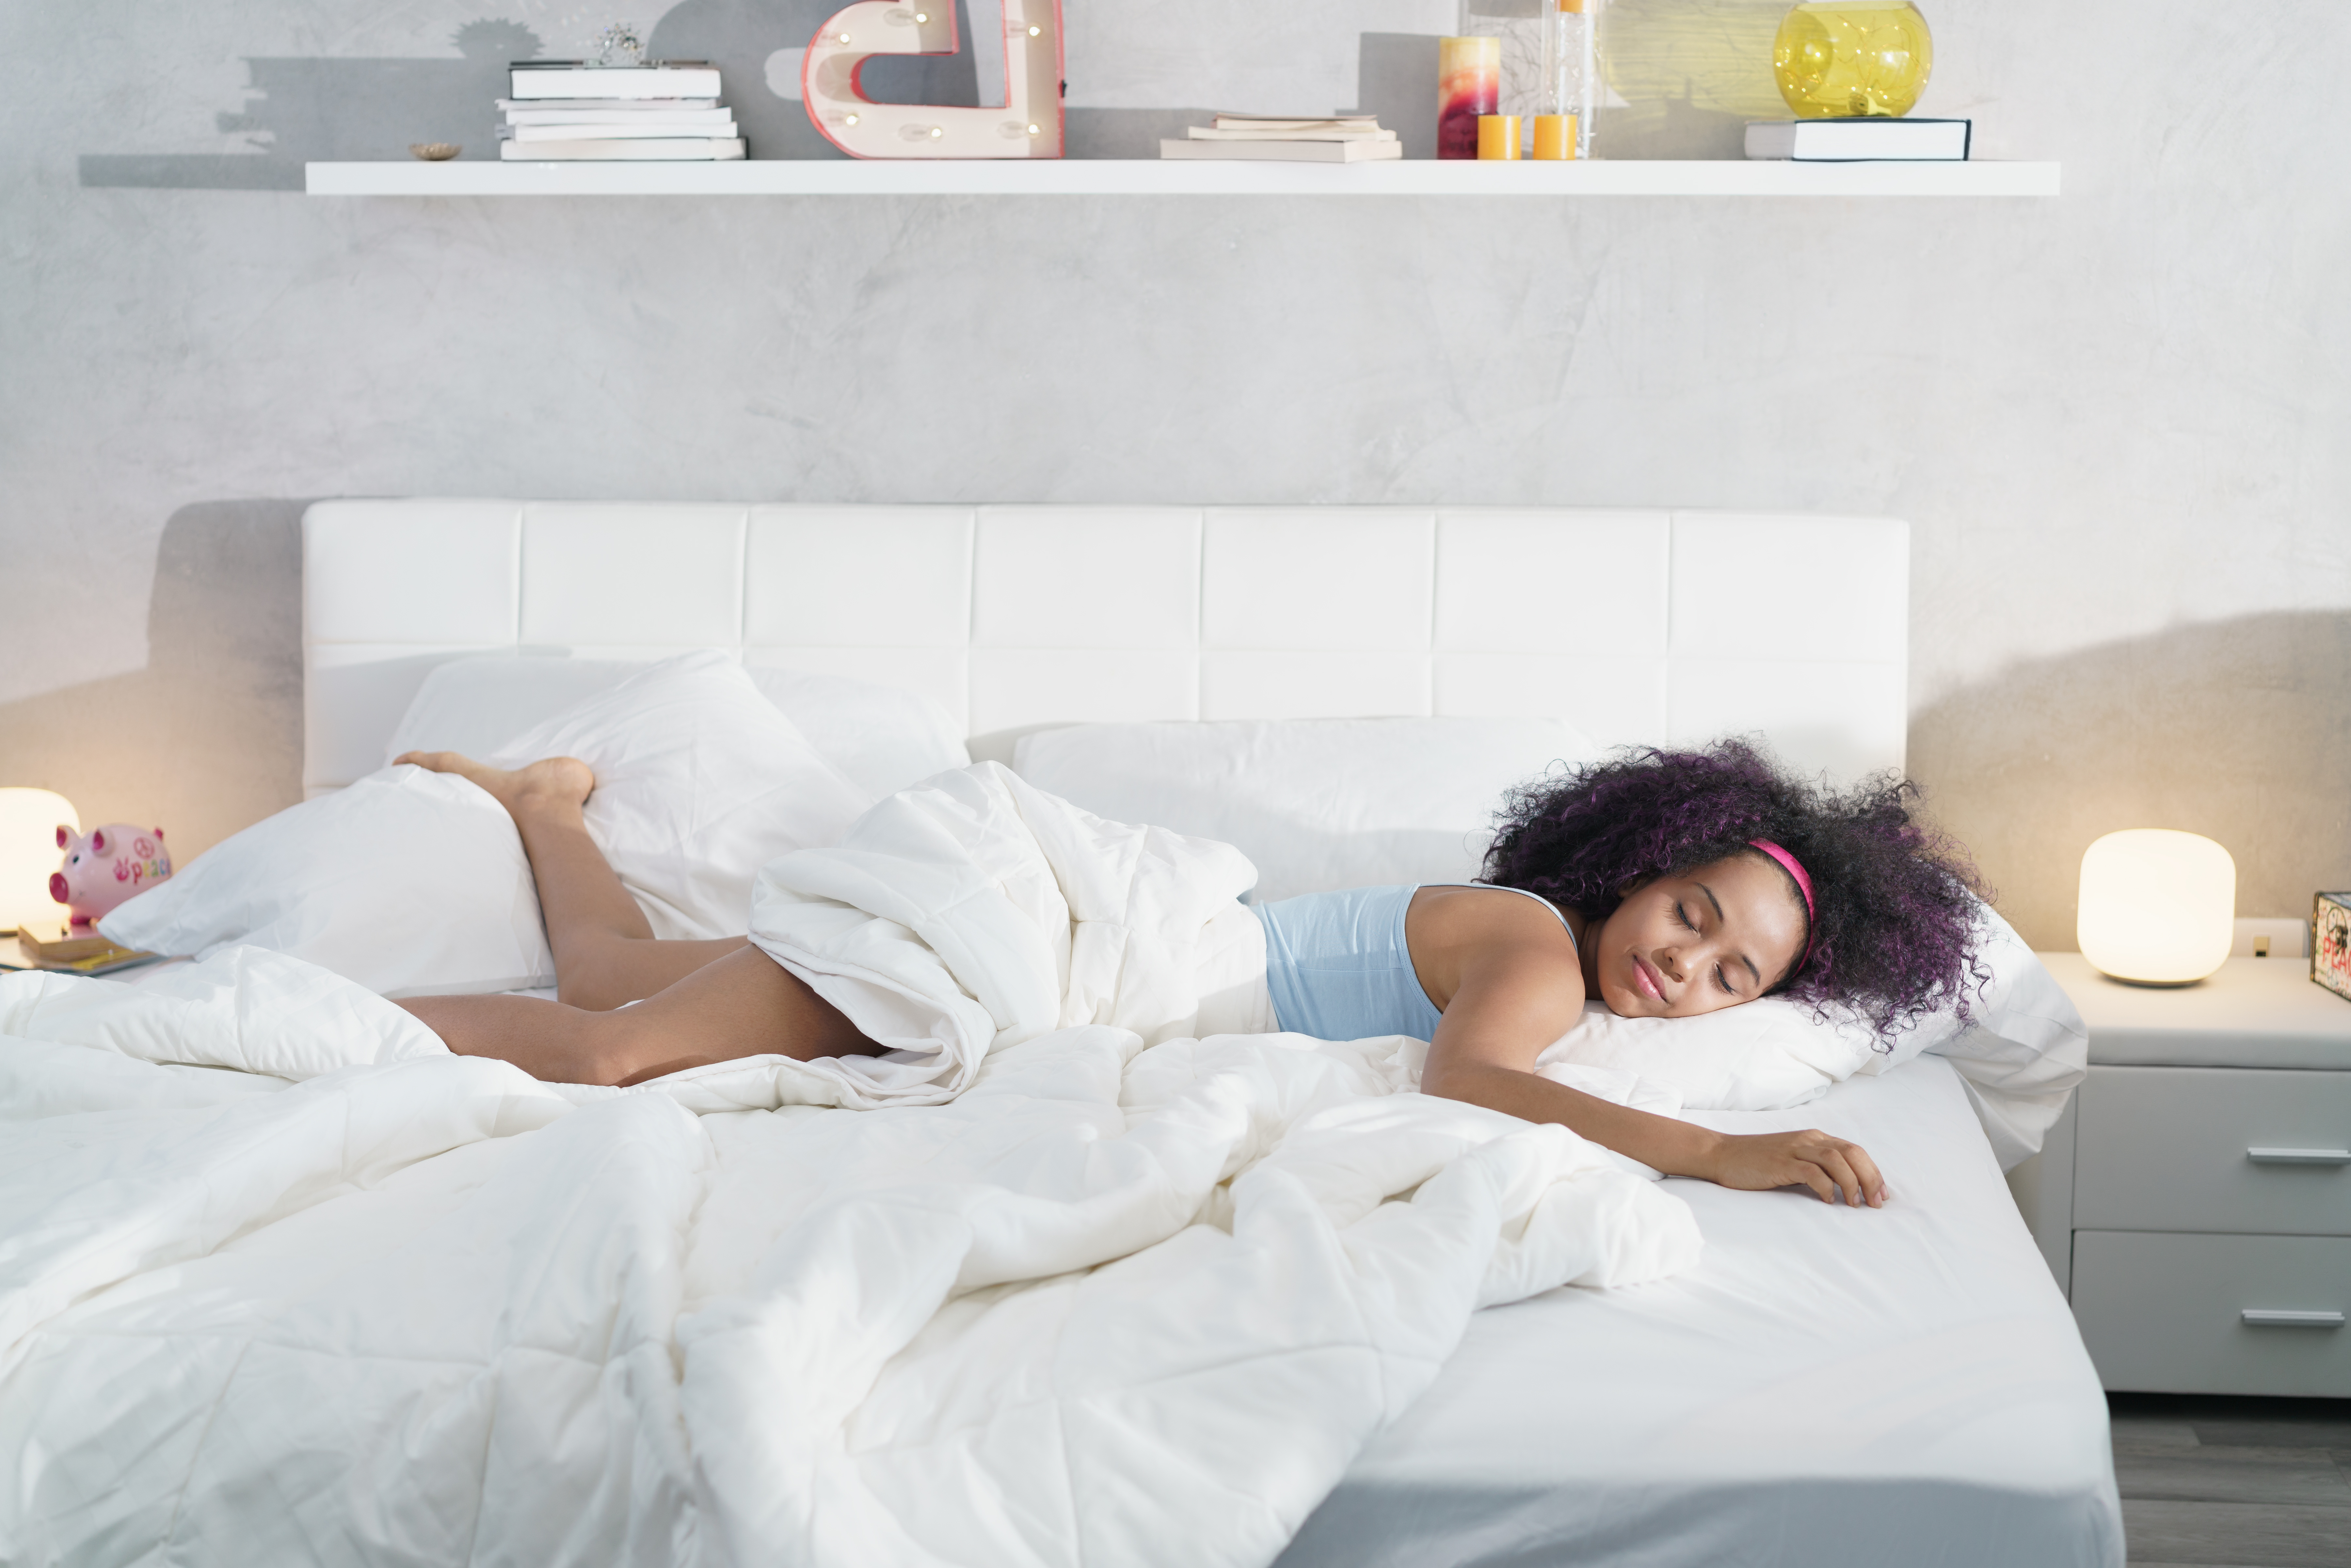 black-woman-sleeping-alone-in-large-bed-NF5HJ2E